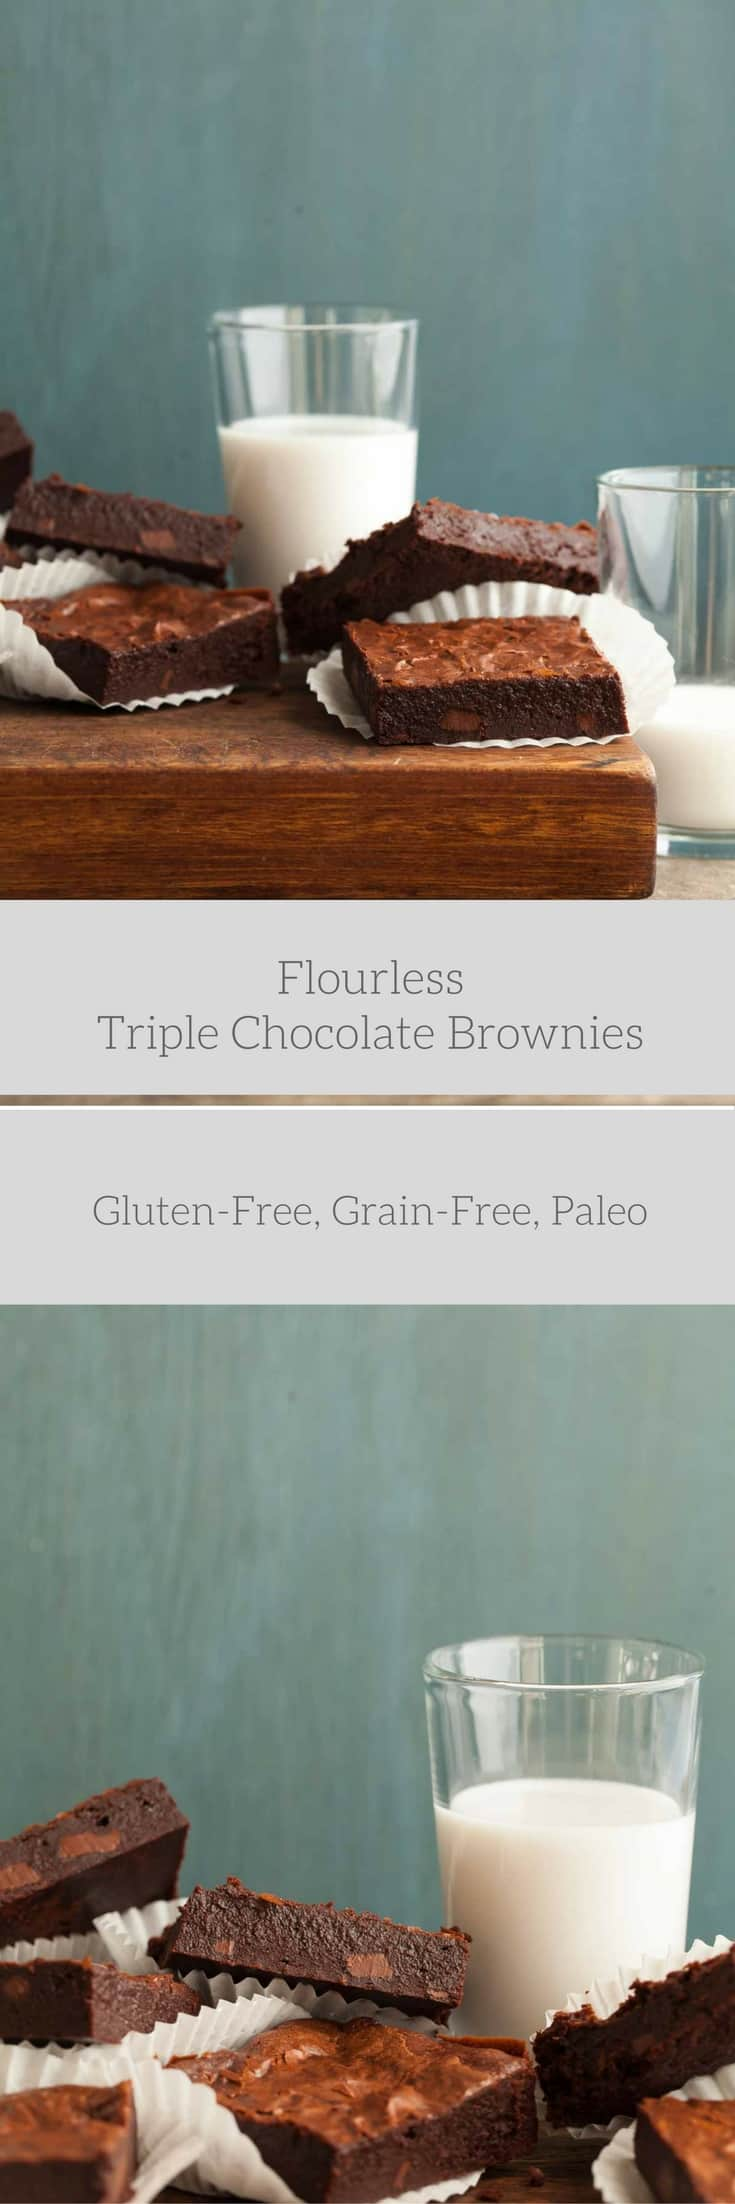 Flourless Triple Chocolate Brownies (Grain-Free, Paleo-Friendly ...